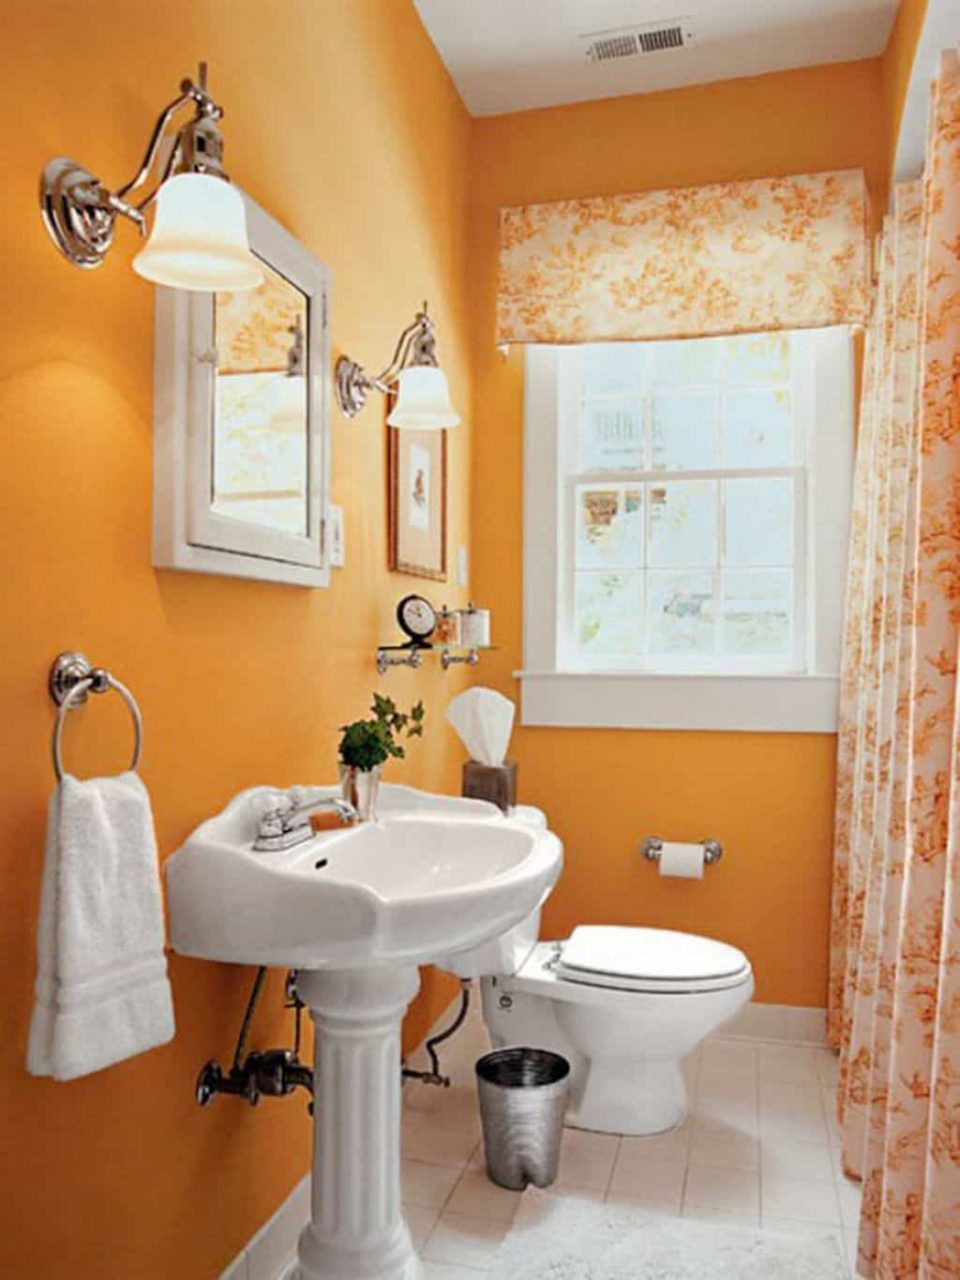 Bathroom With Orange Walls And White Elongated Toilet The Benefits